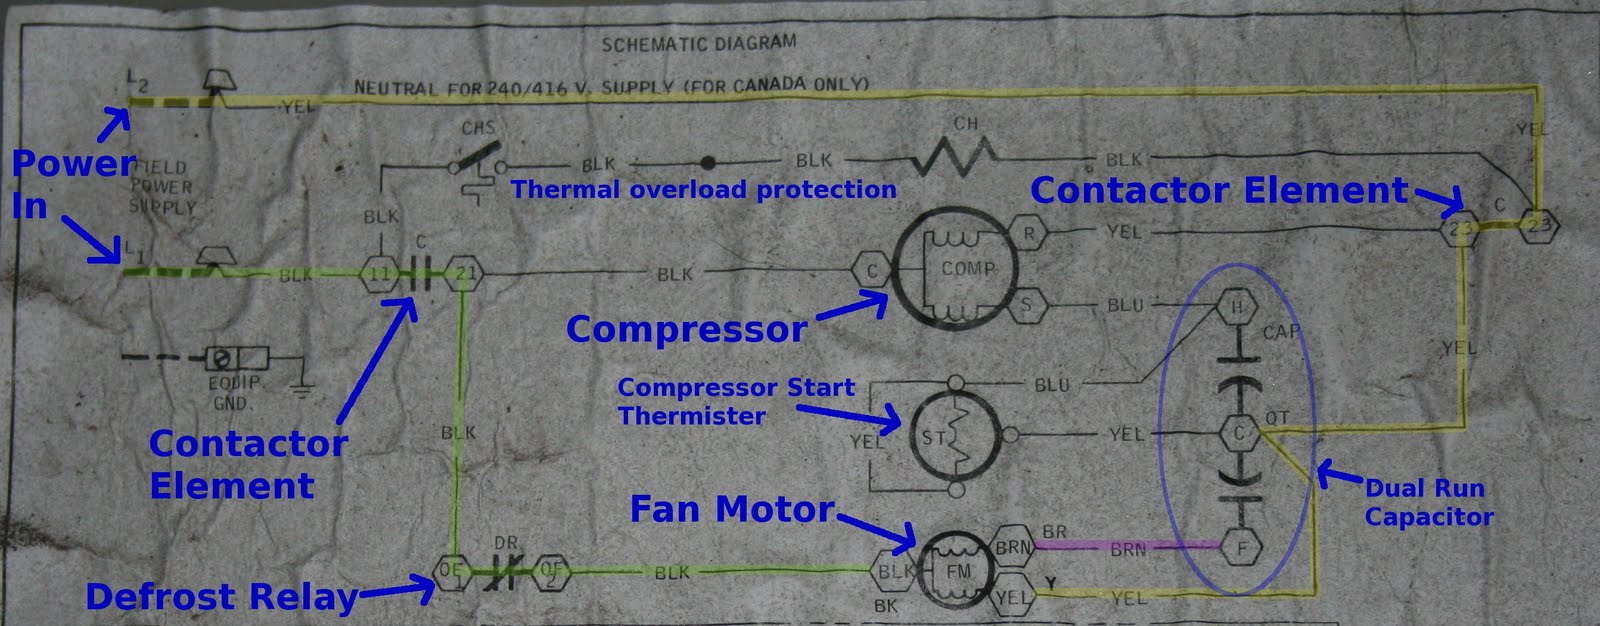 hight resolution of for those of you who don t have the benefit of experience i took the liberty of marking the schematic up a little to clarify please pardon my cartoonish